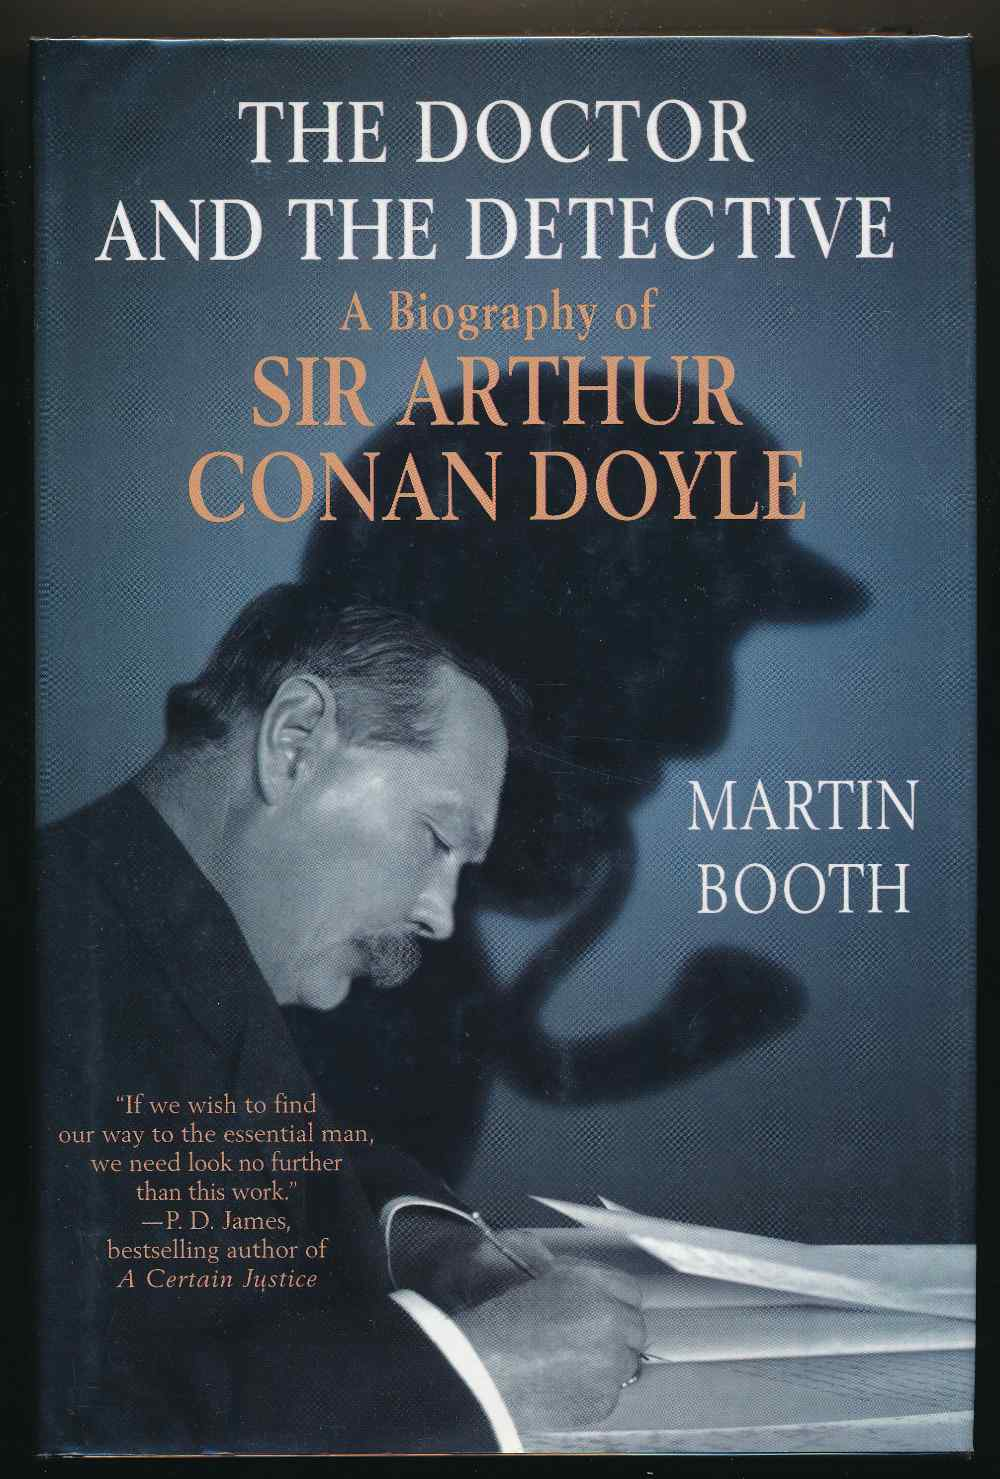 The Doctor and the detective : a biography of Sir Arthur Conan Doyle